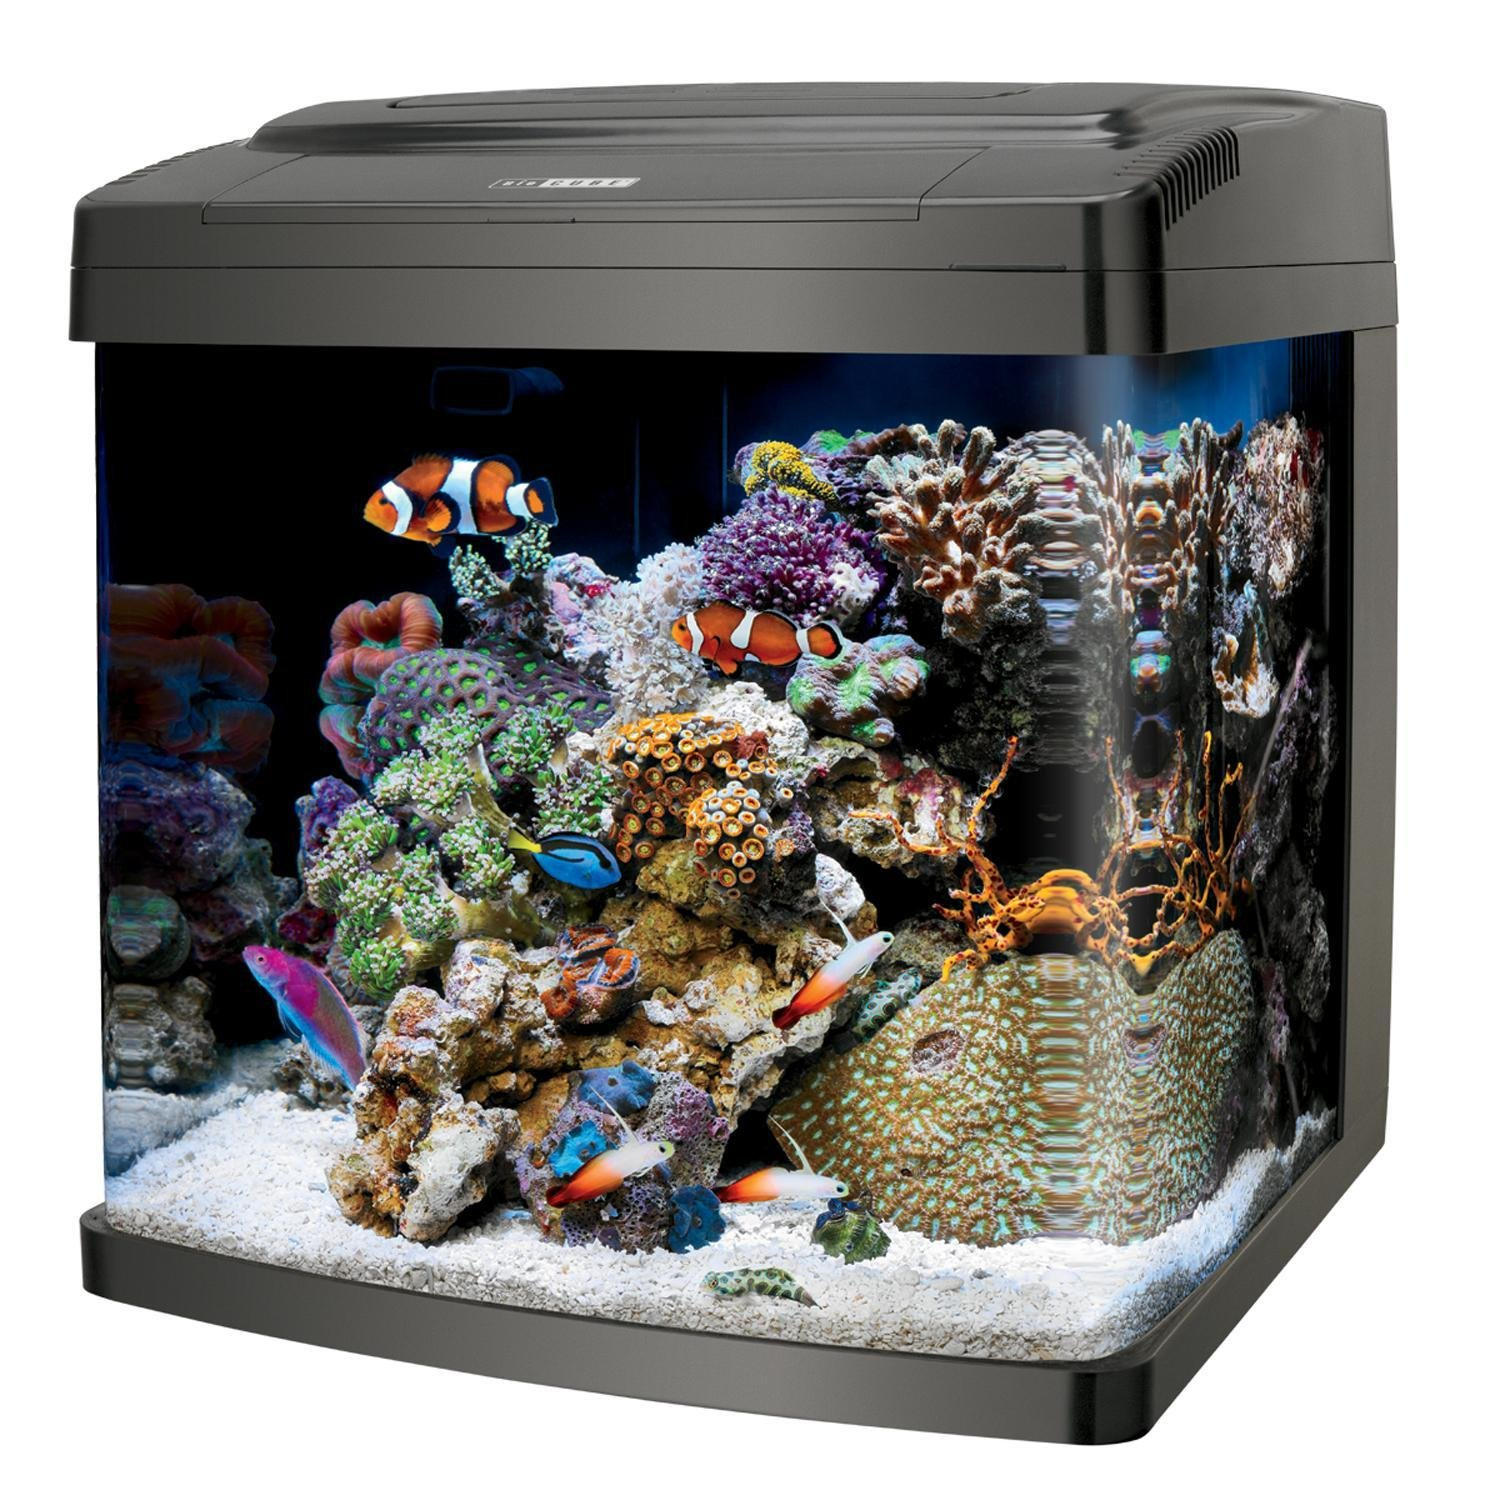 Cool fish tanks aquariums for Freshwater fish tank setup